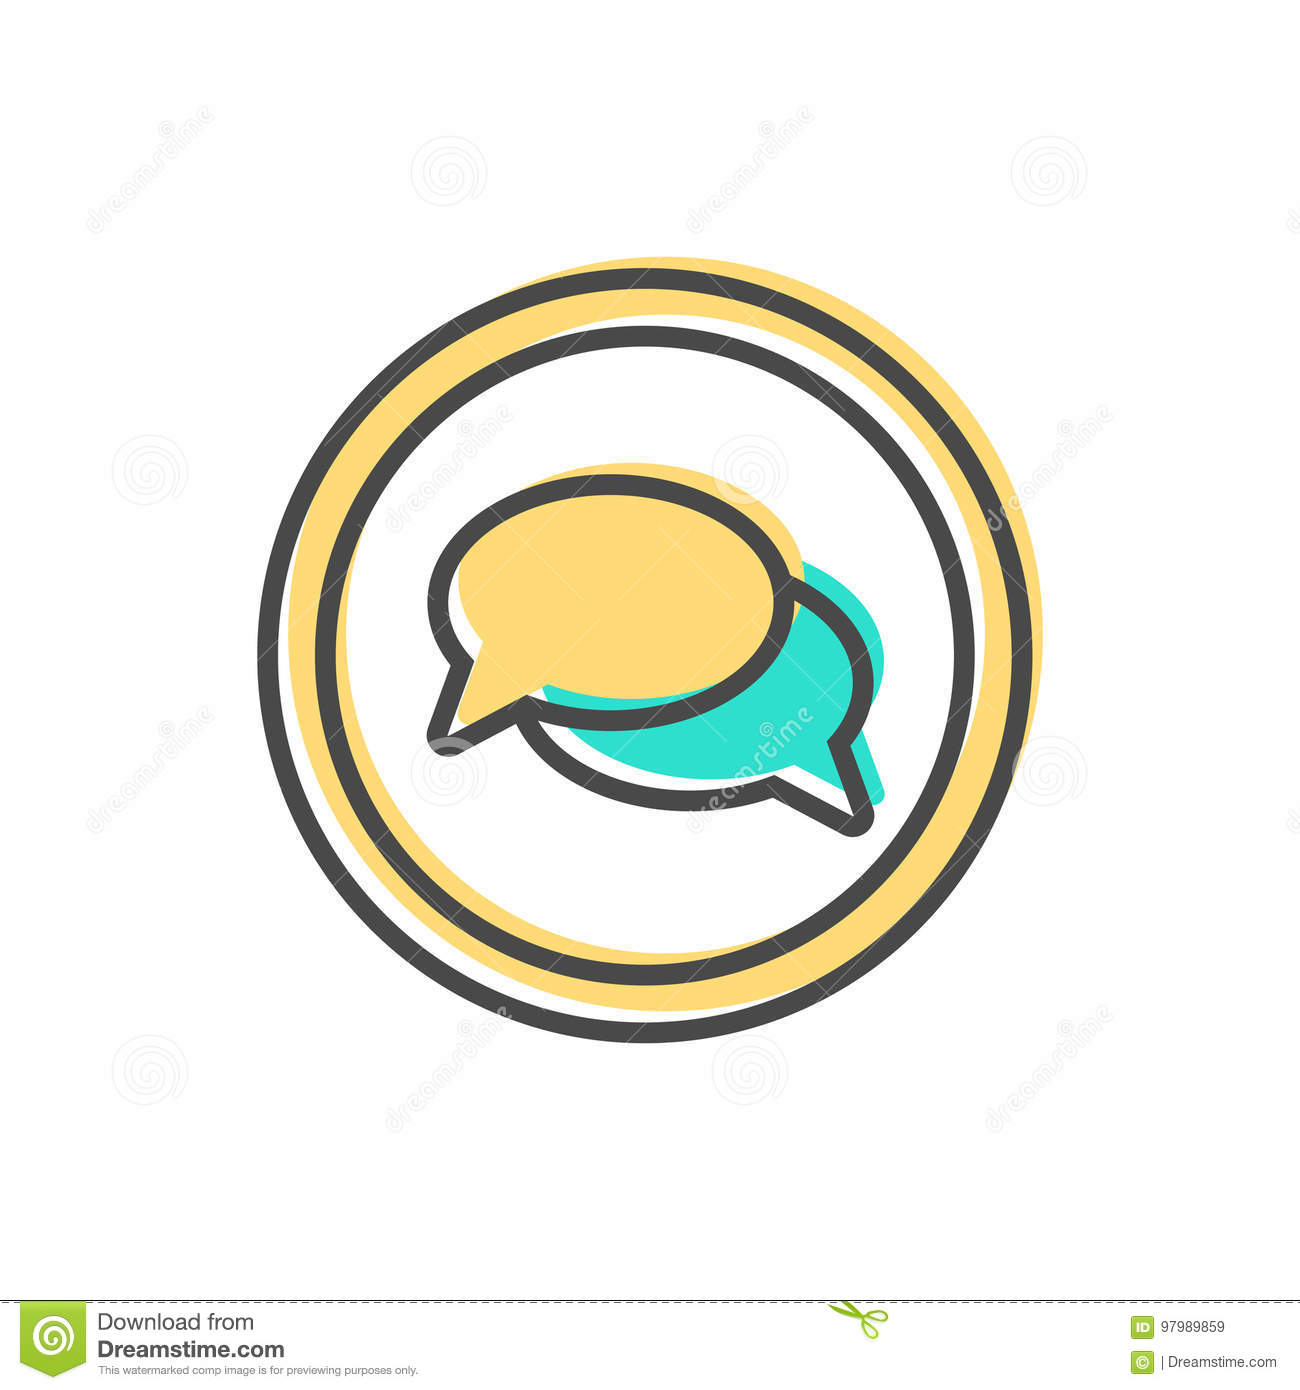 download data sorting icon with speech bubble sign stock vector illustration of processing analyst